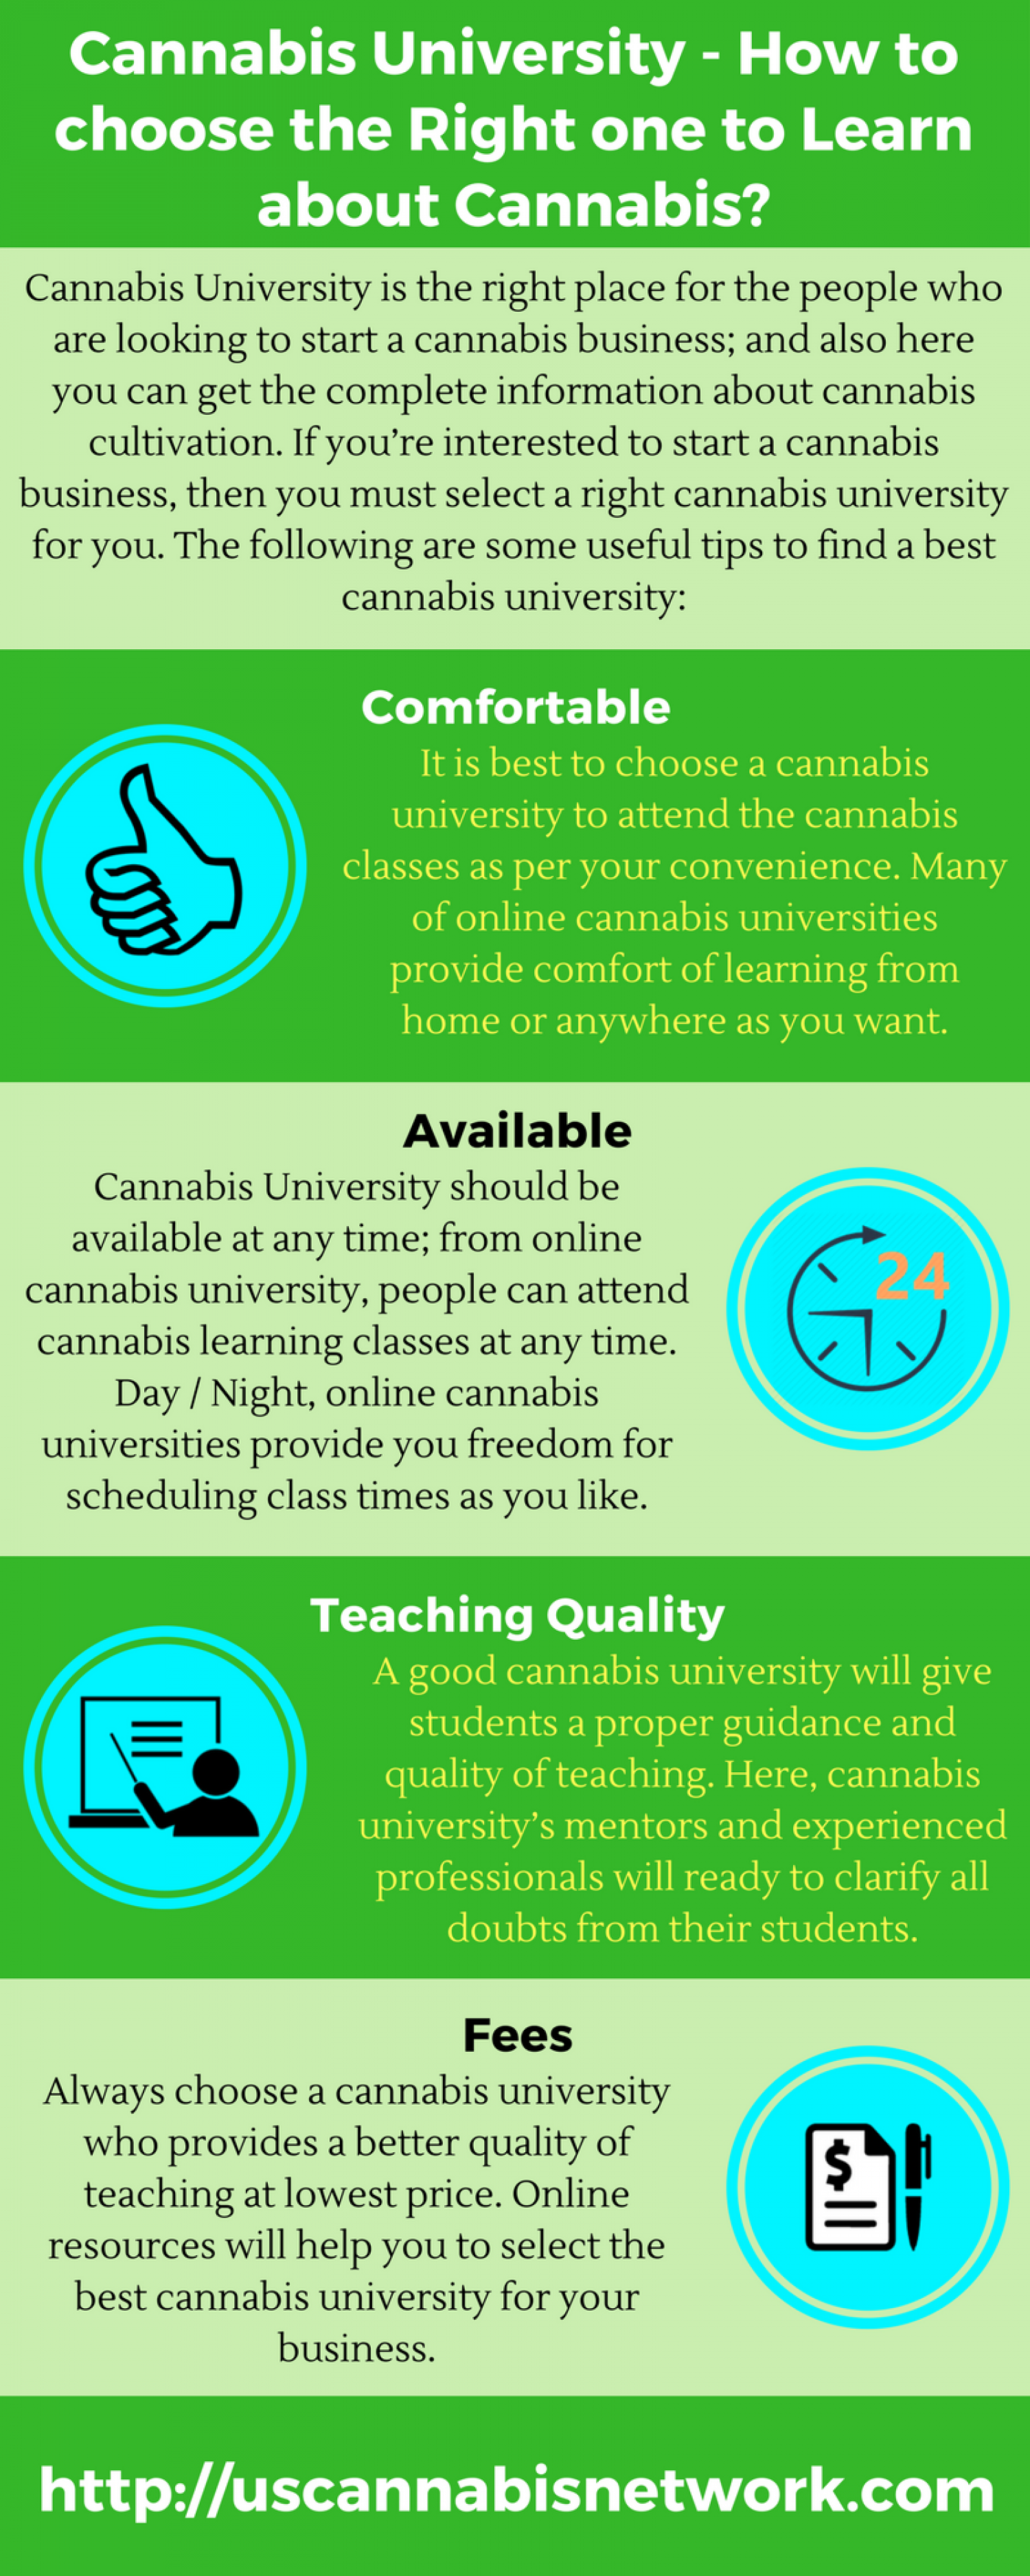 Cannabis University - How to choose the Right one to Learn about Cannabis?